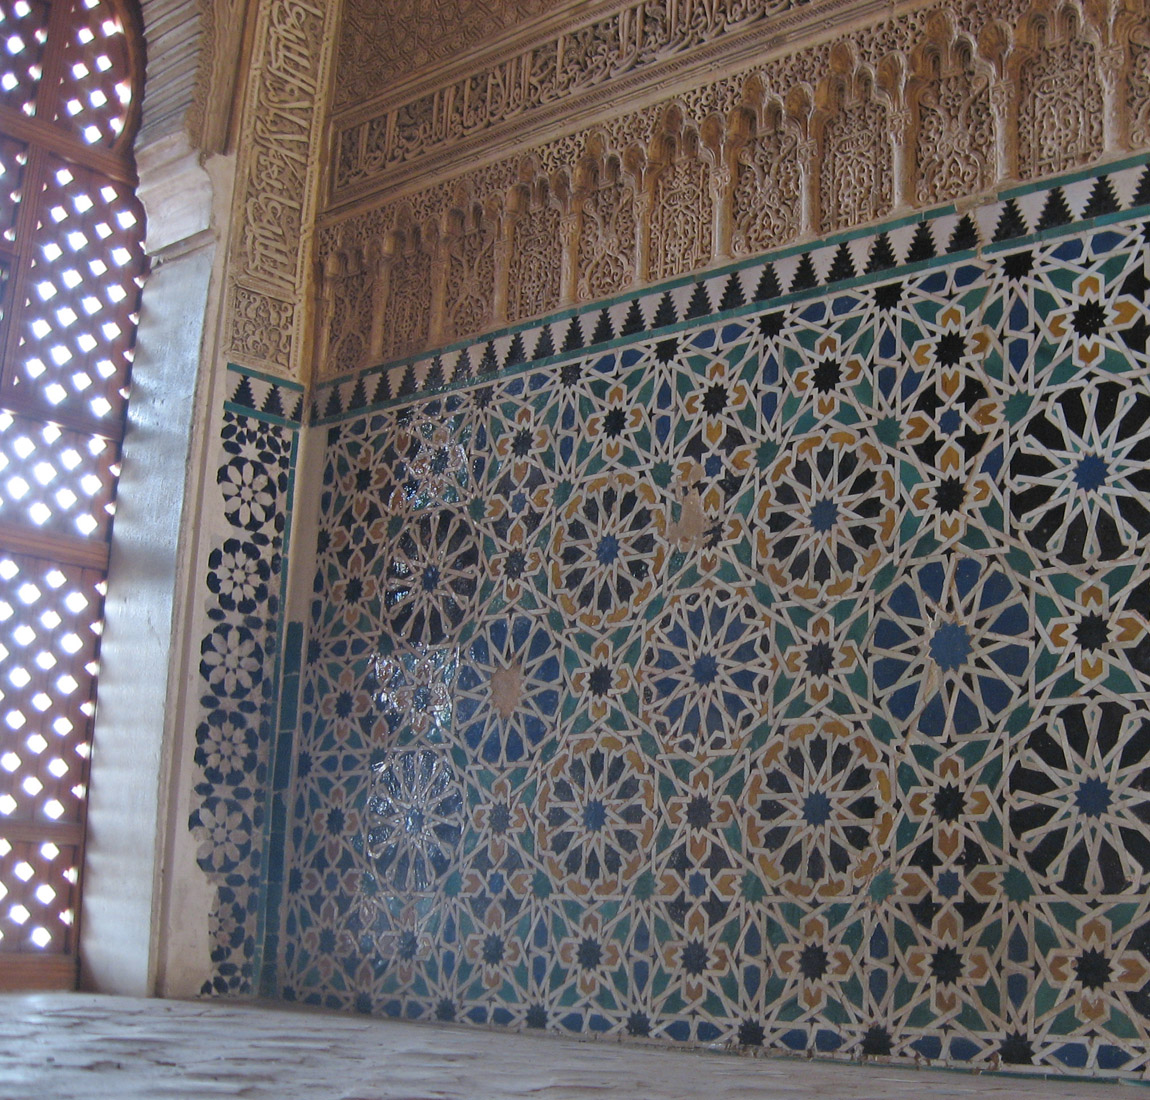 Decimalswhats the point tessellationse they math the alhambra in granada spain google images dailygadgetfo Images